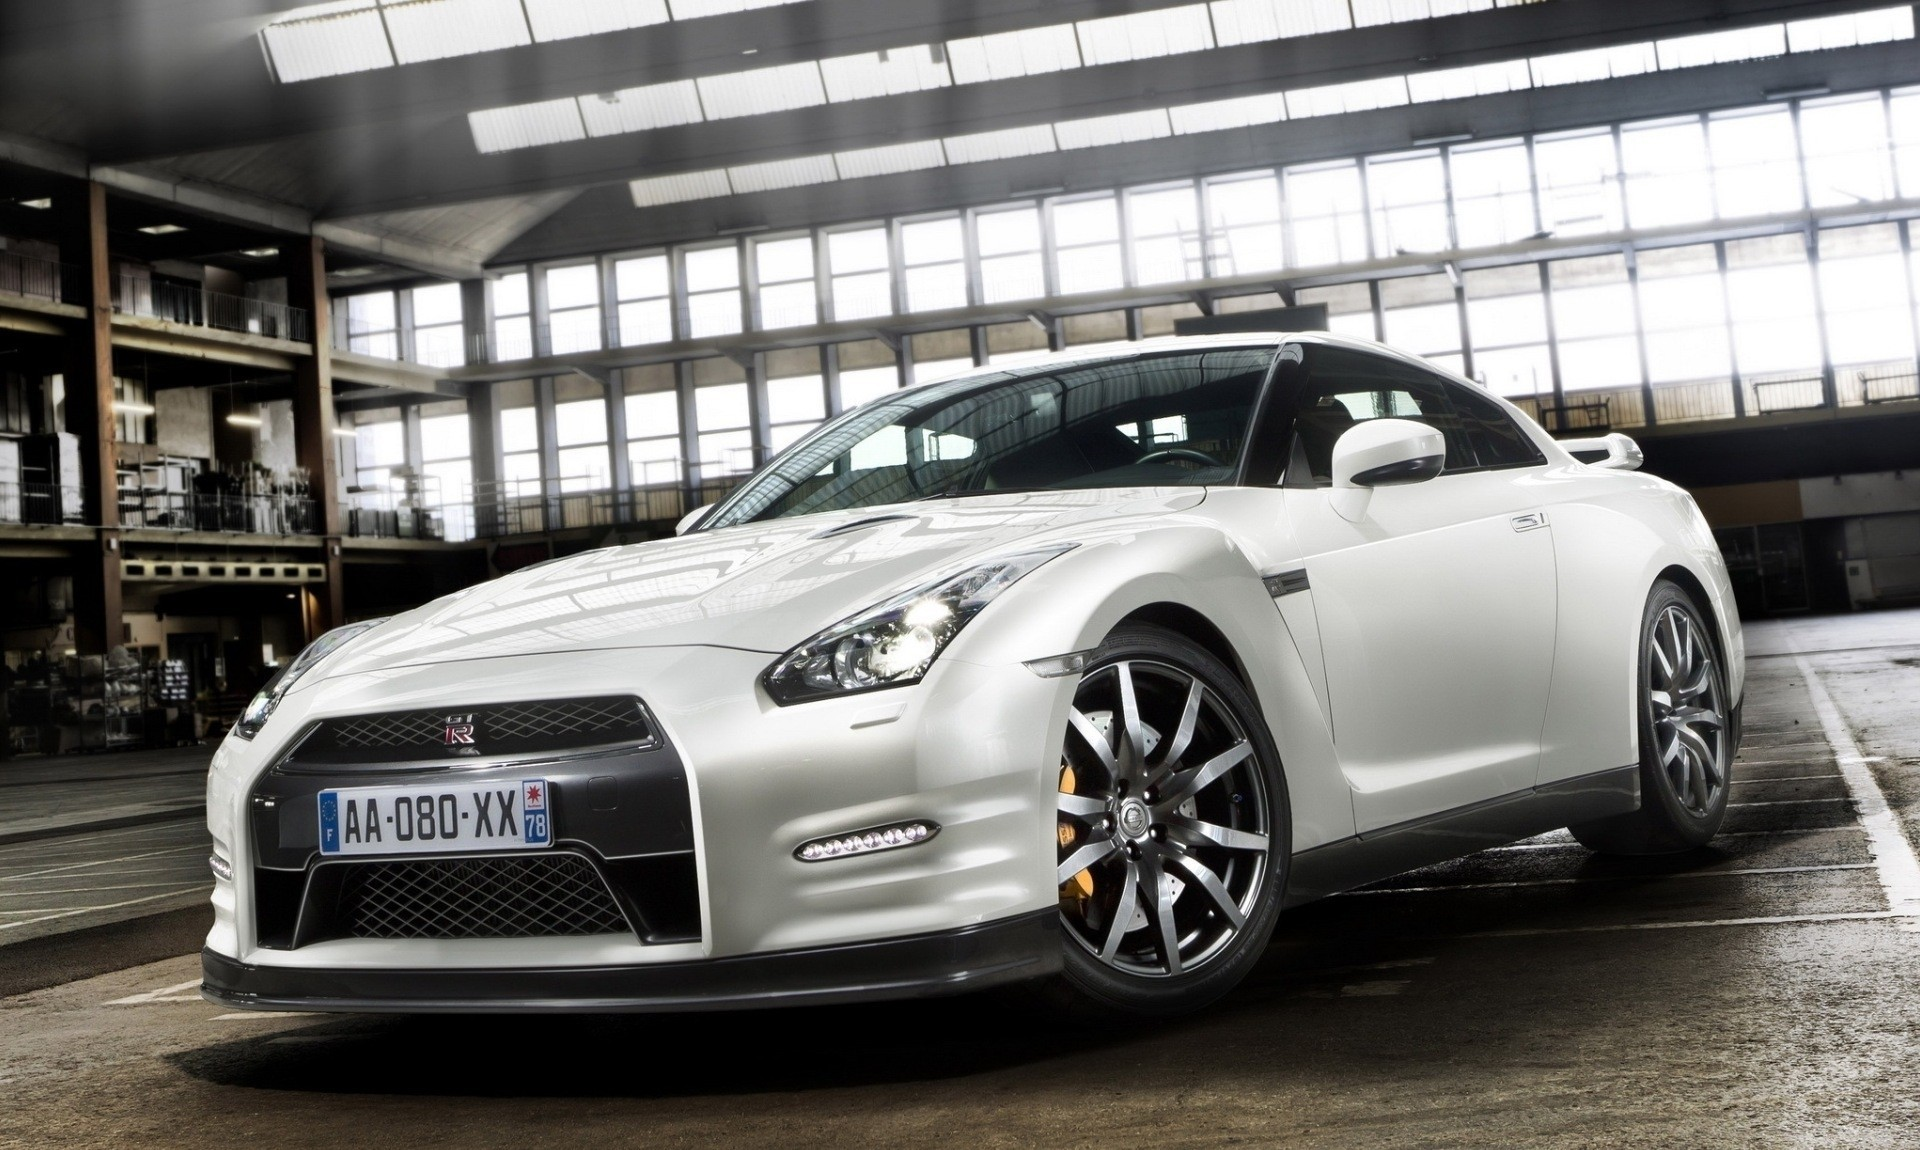 Gtr Nissan Gtr R35 Cars Wallpaper